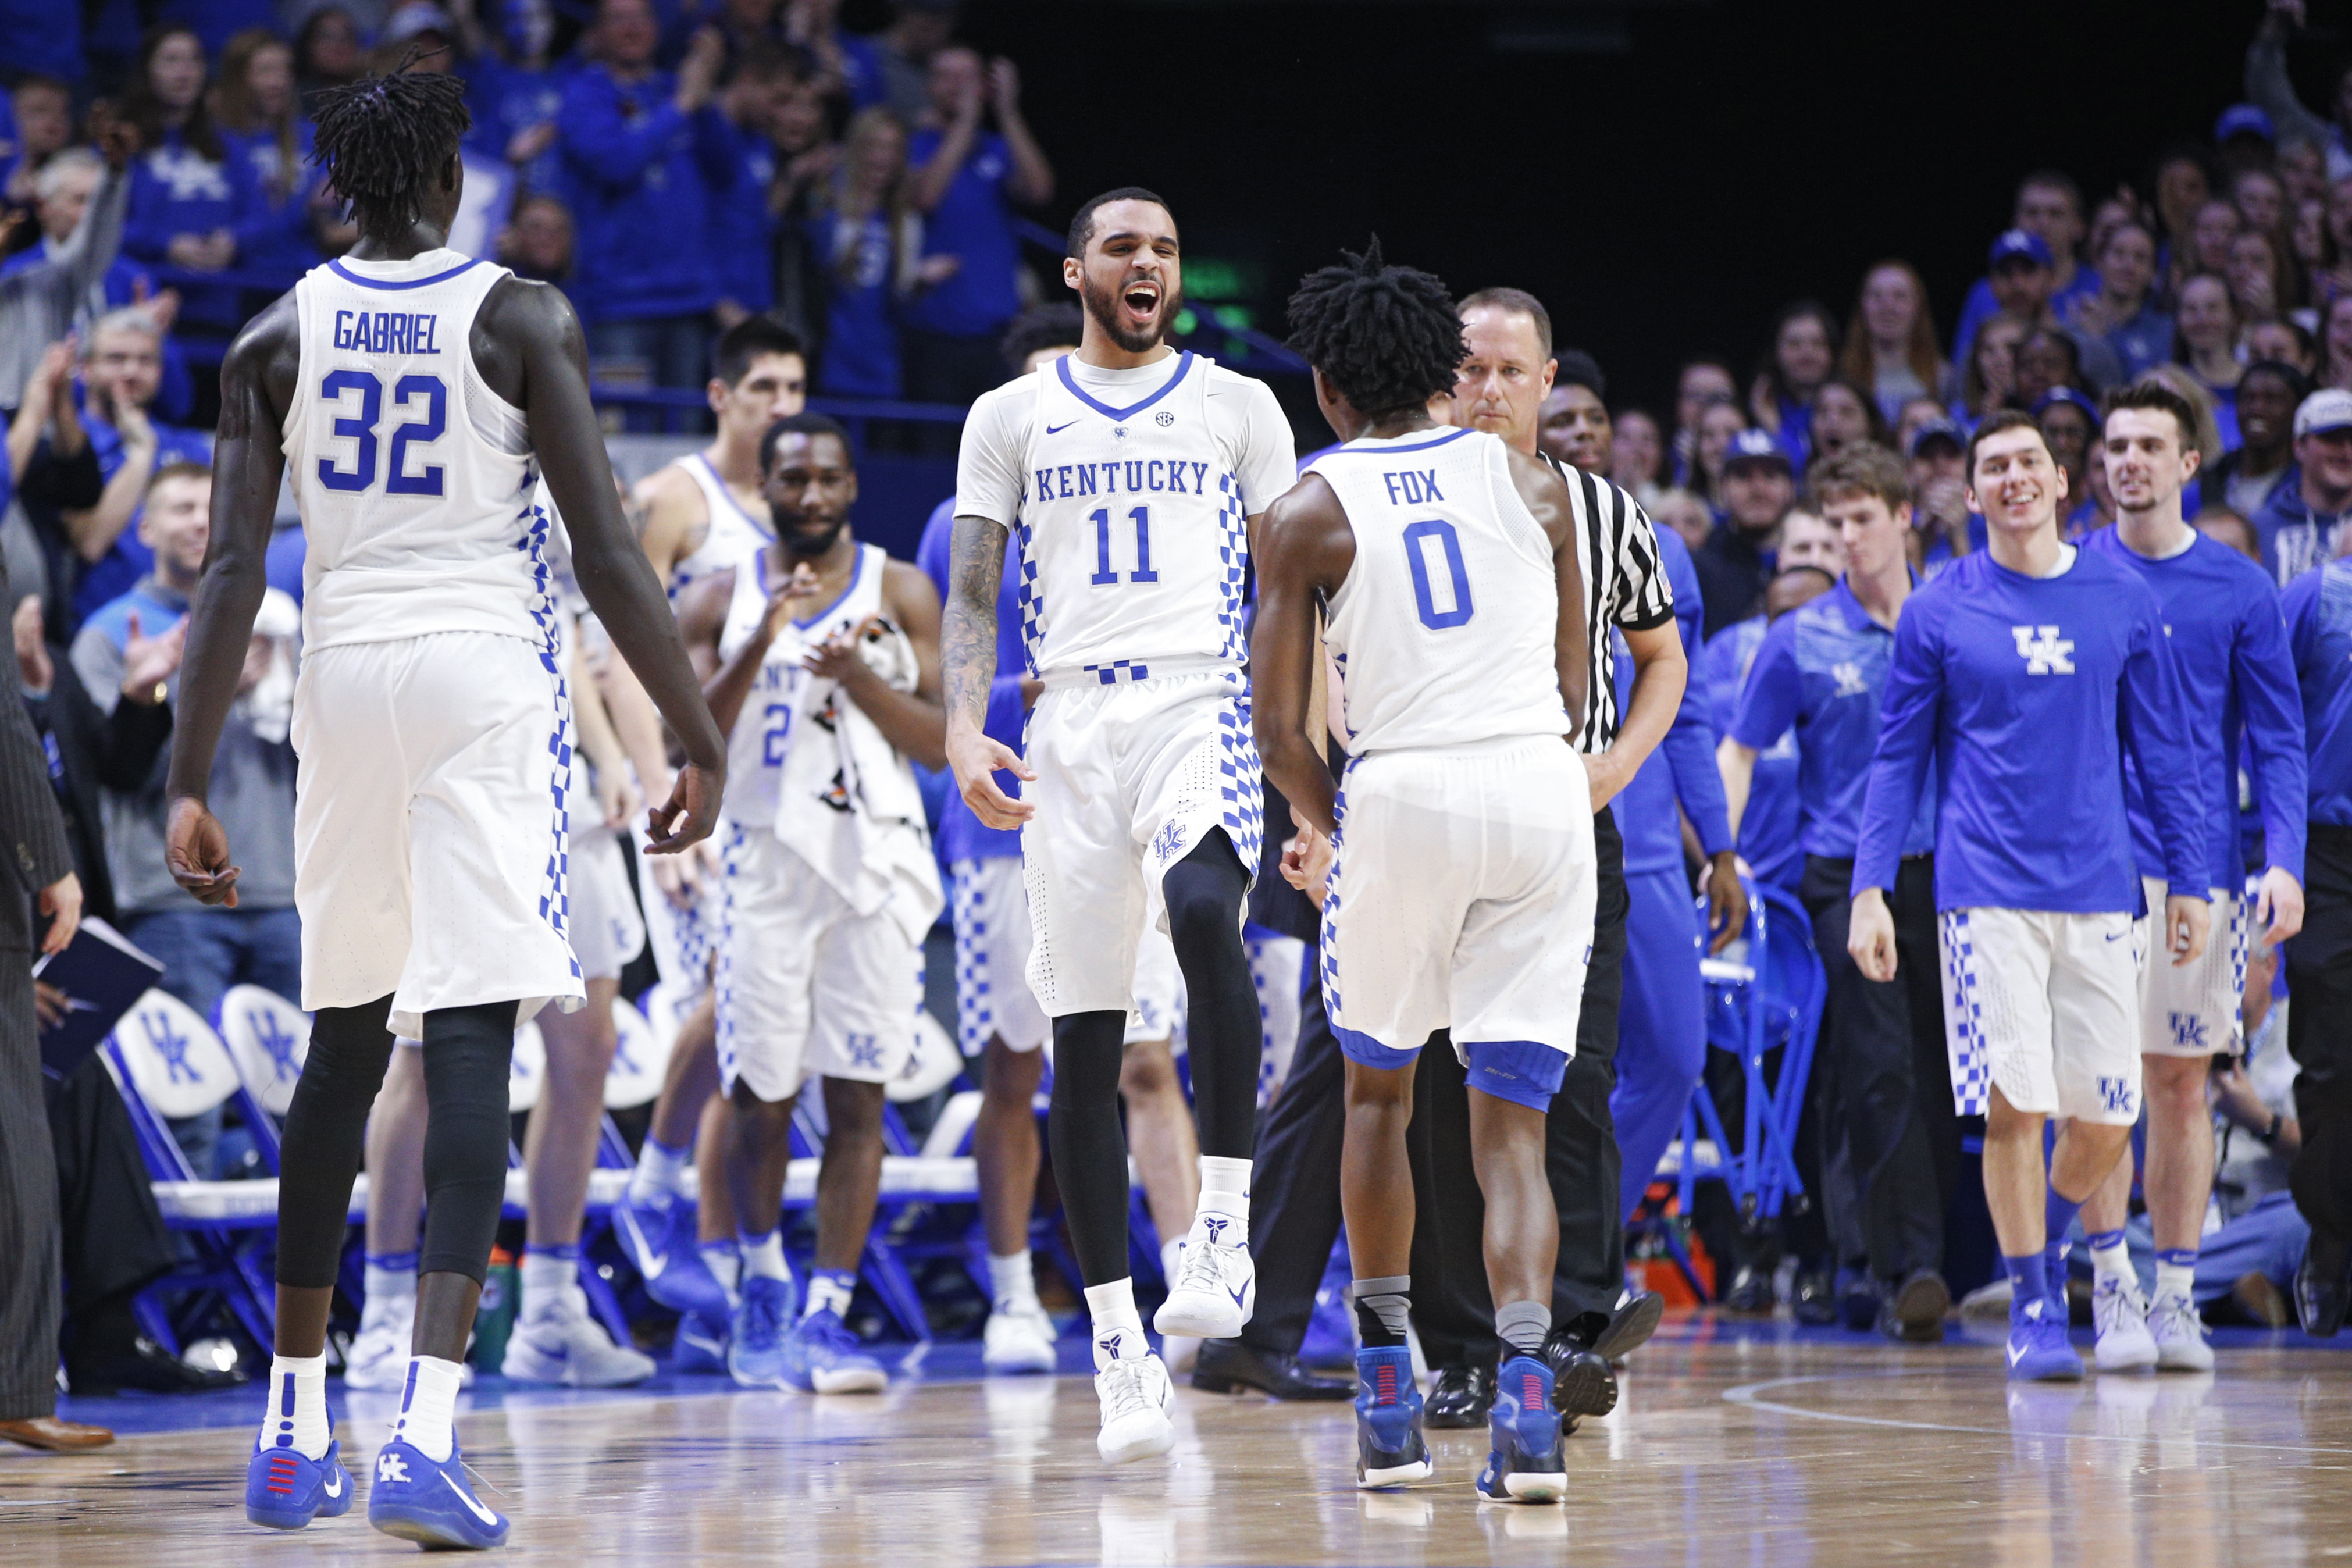 Kentucky Basketball Highlights And Box Score From Historic: Highlights, Box Score, Postgame Notes From Kentucky